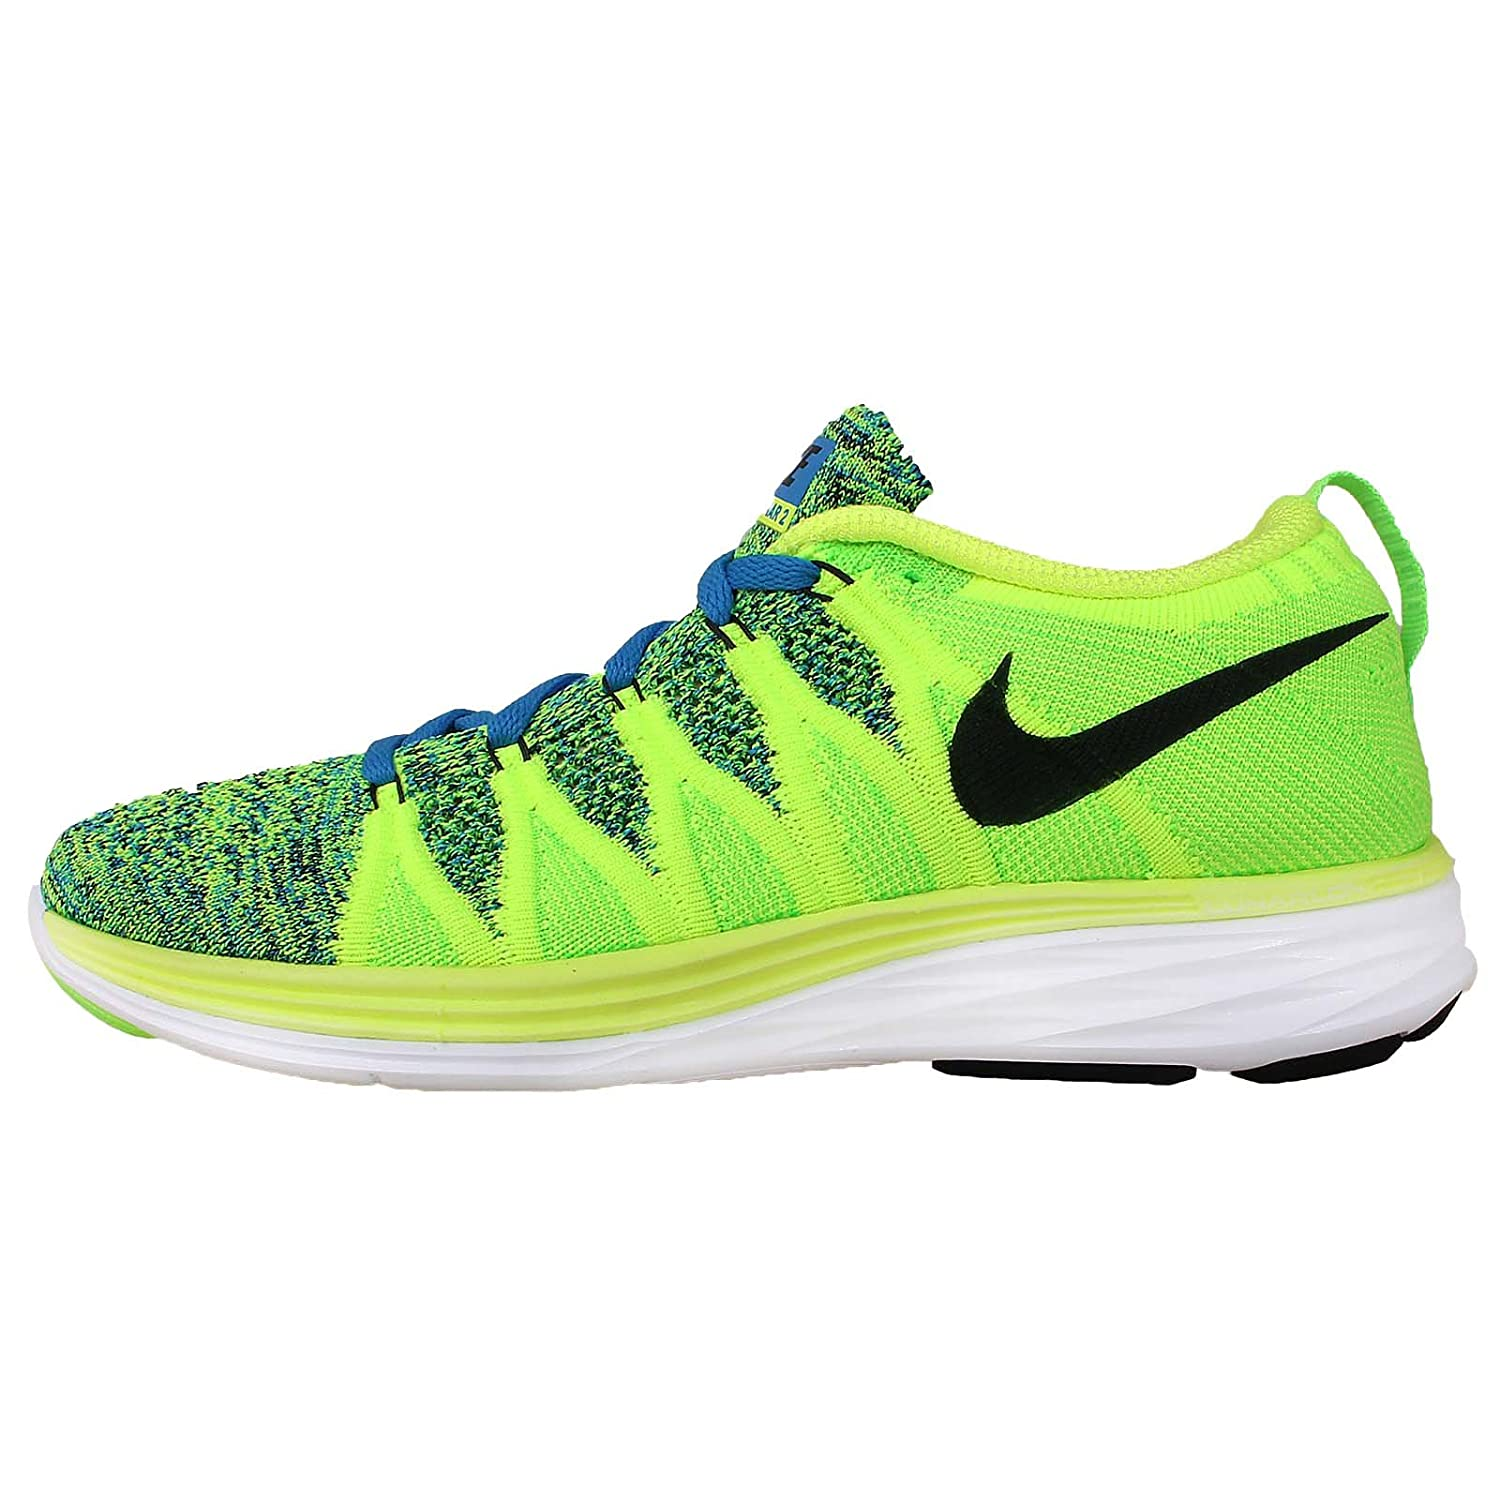 outlet store f6d11 df895 NIKE Flyknit Lunar 2 Women s Running Shoes - HO14  Amazon.co.uk  Sports    Outdoors